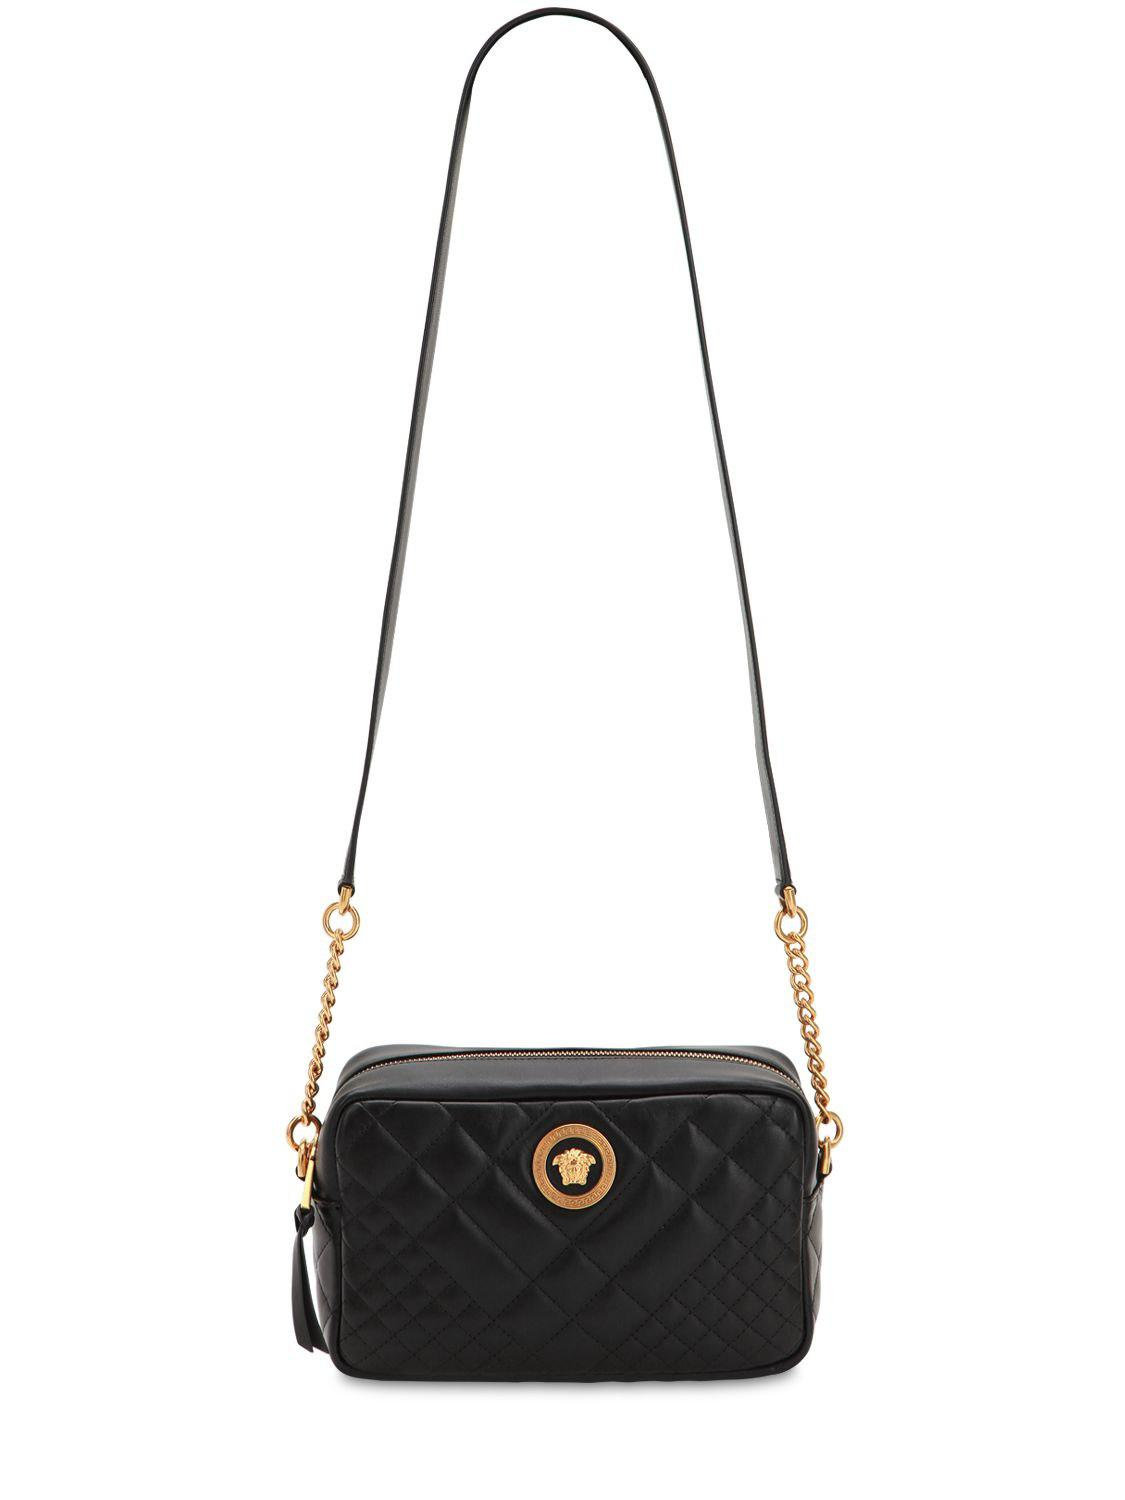 401de8faed Versace - Black Icon Medium Quilted Leather Camera Bag - Lyst. View  fullscreen